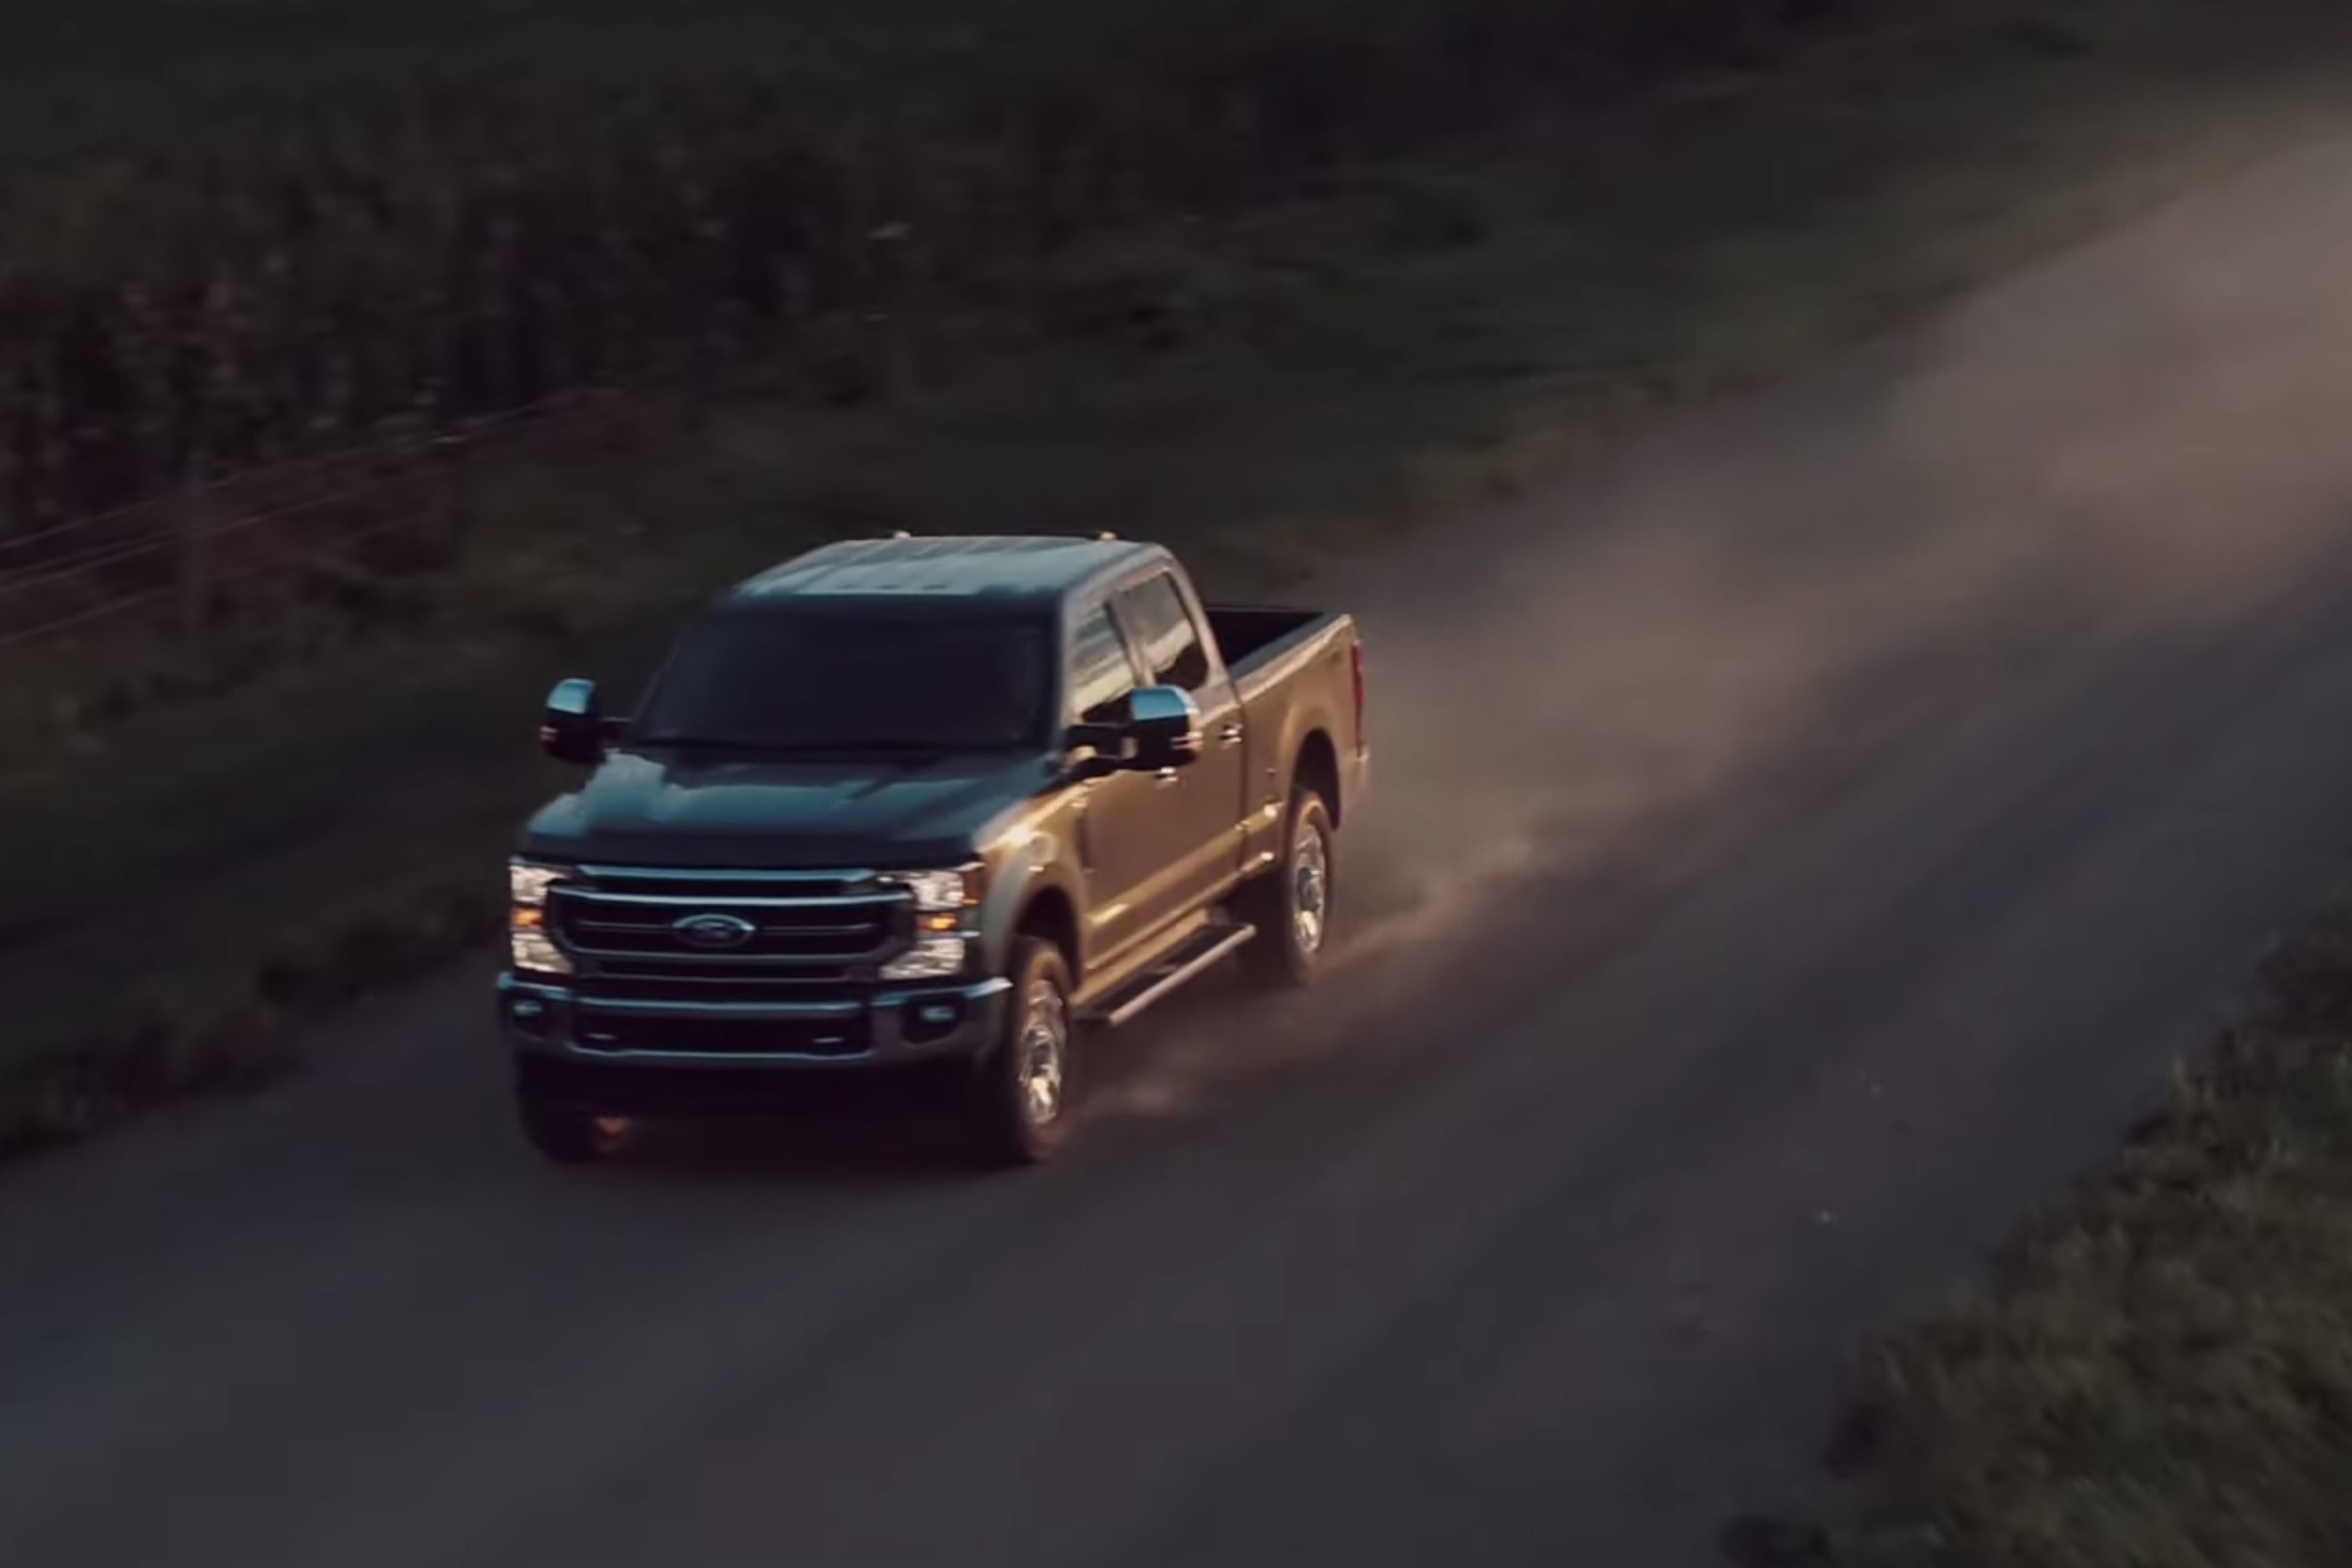 Ford's new 'American' pitch lands as election nears and it ramps up U.S. manufacturing